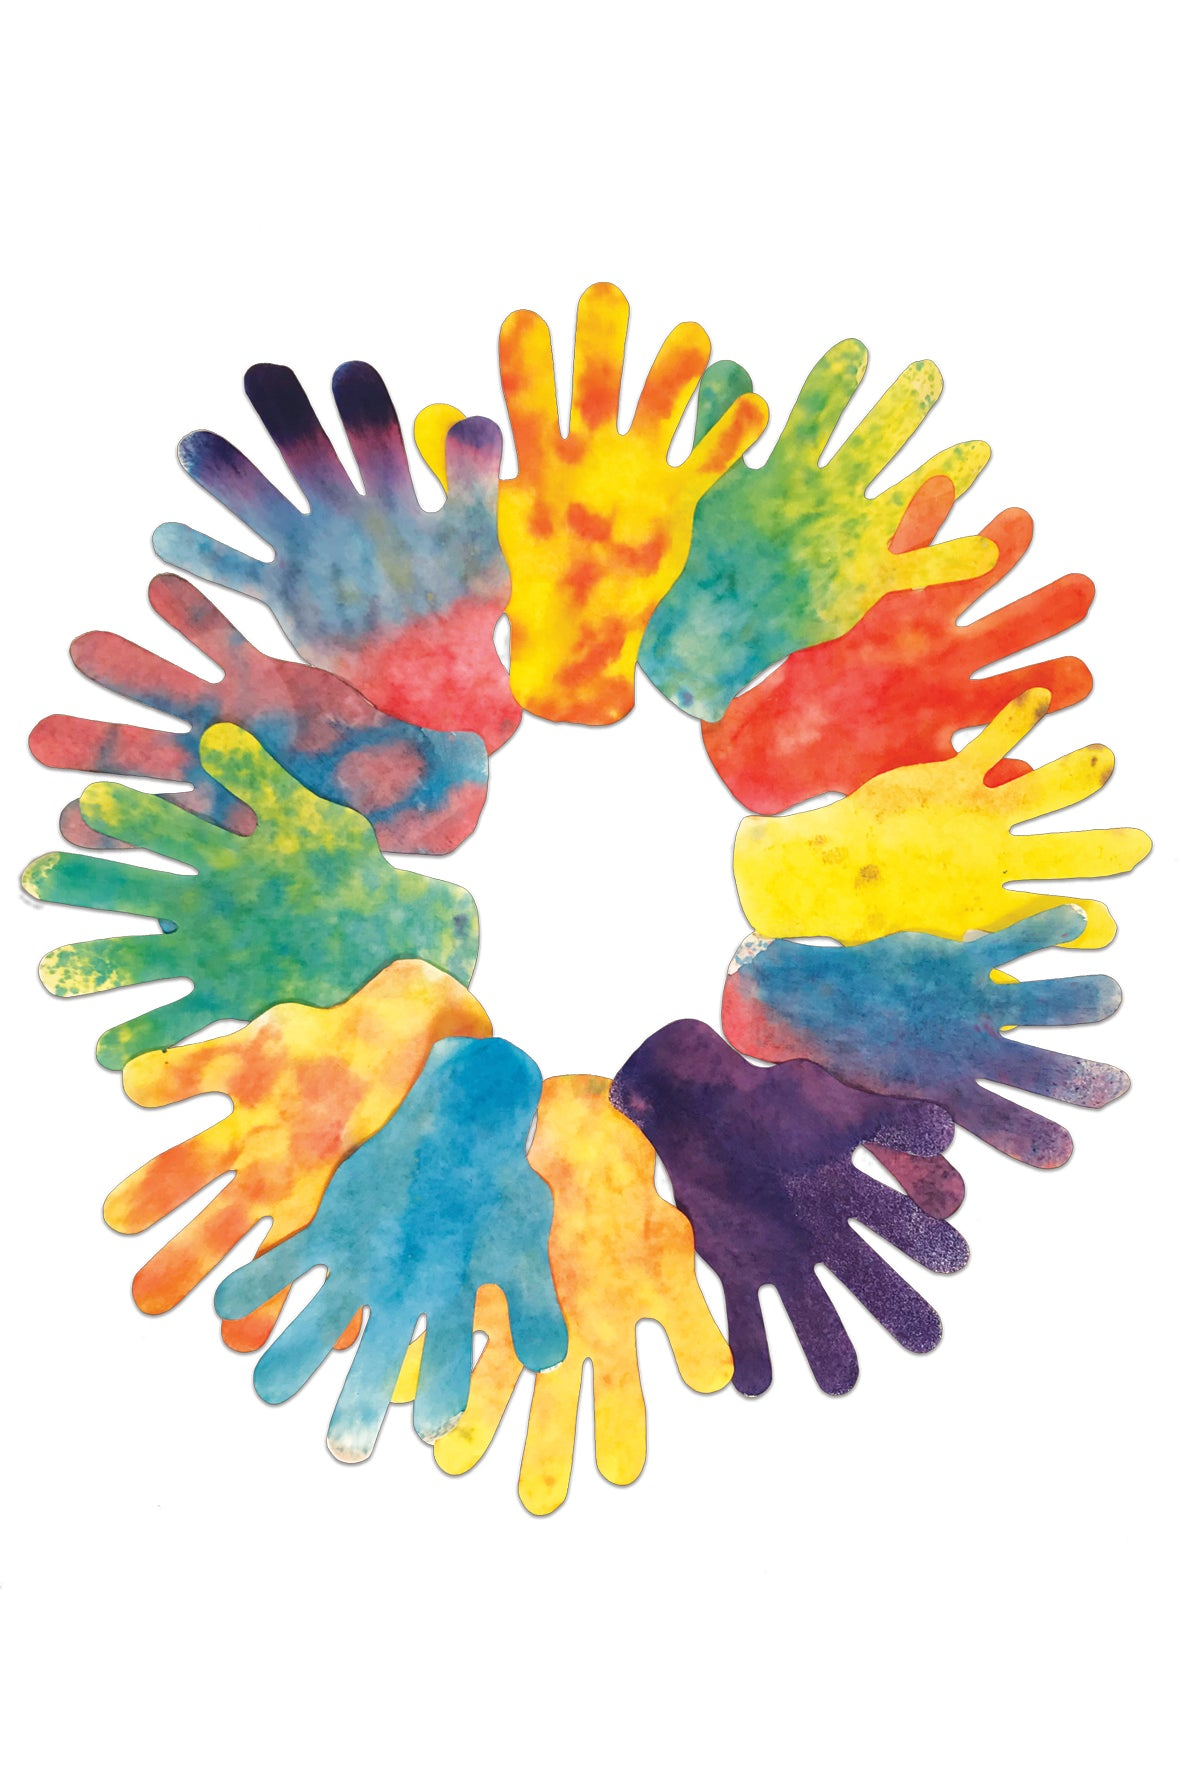 Roylco® Color Diffusing Paper Hands